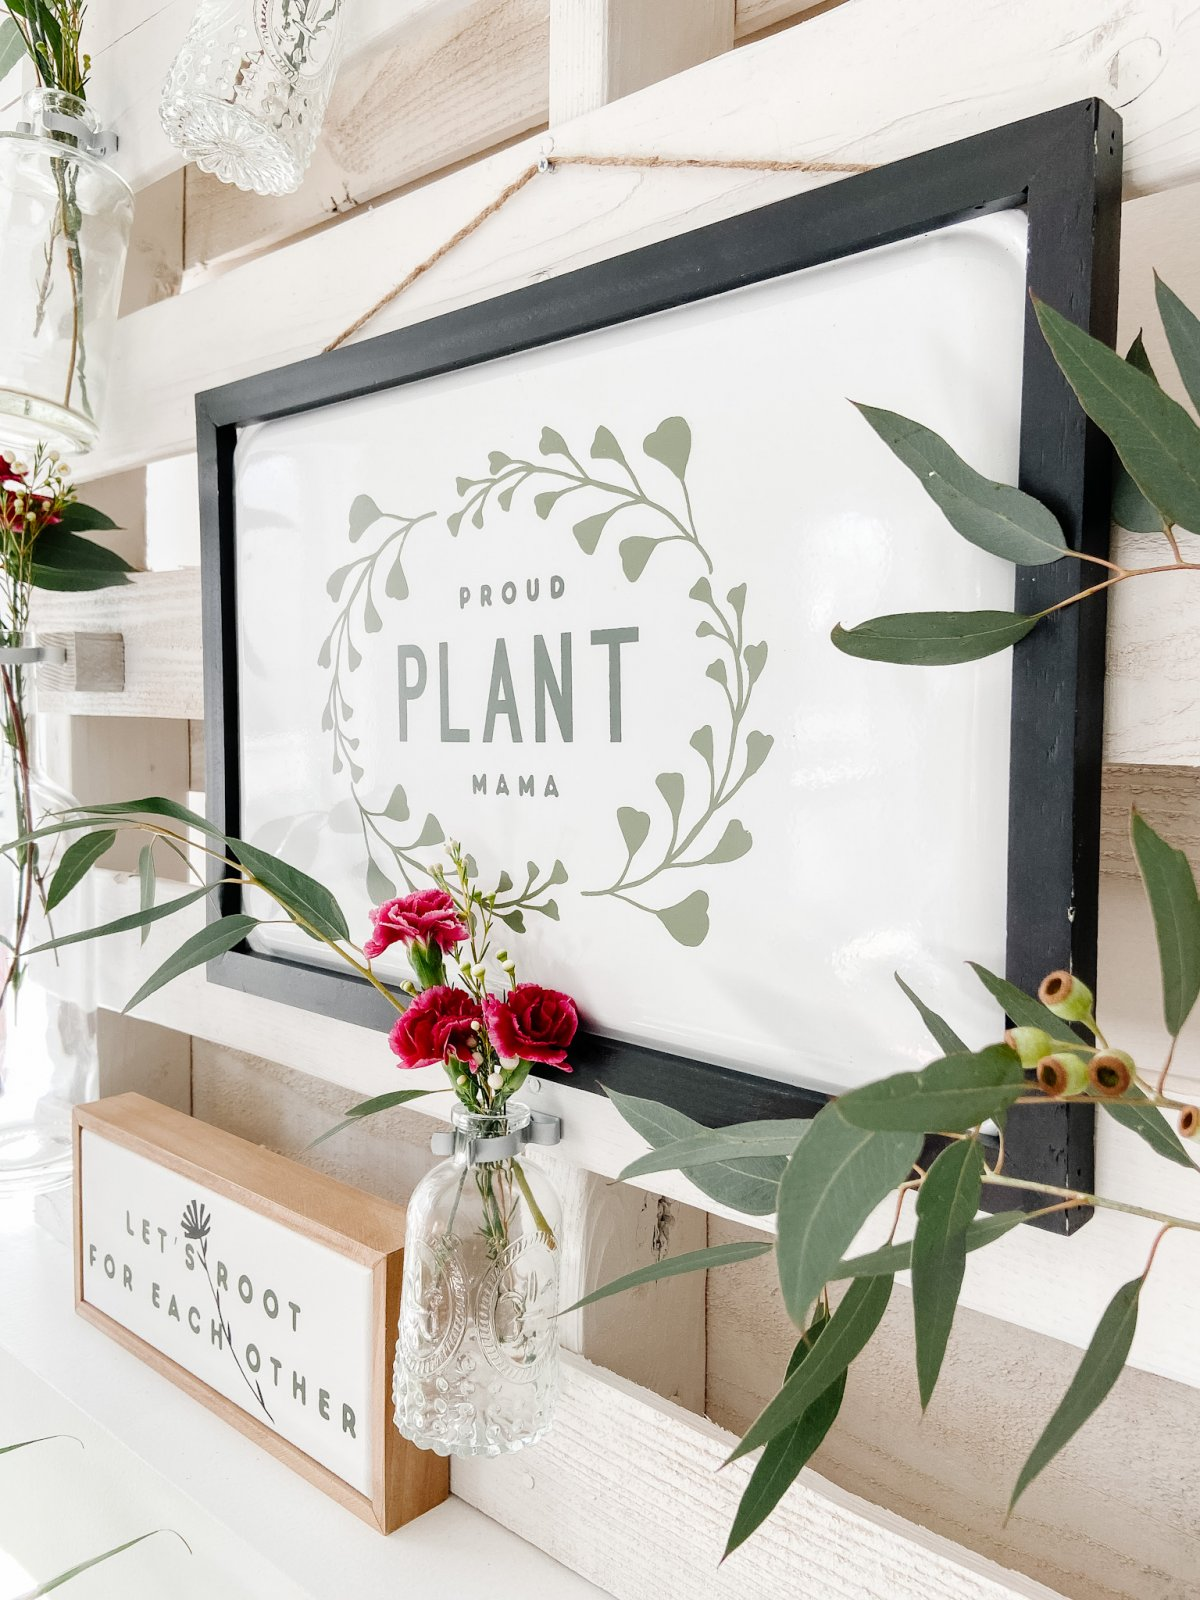 DIY Spring Pallet Flower Mantel. Turn a free pallet into a beautiful vertical flower and sign display that can be changed out seasonally!